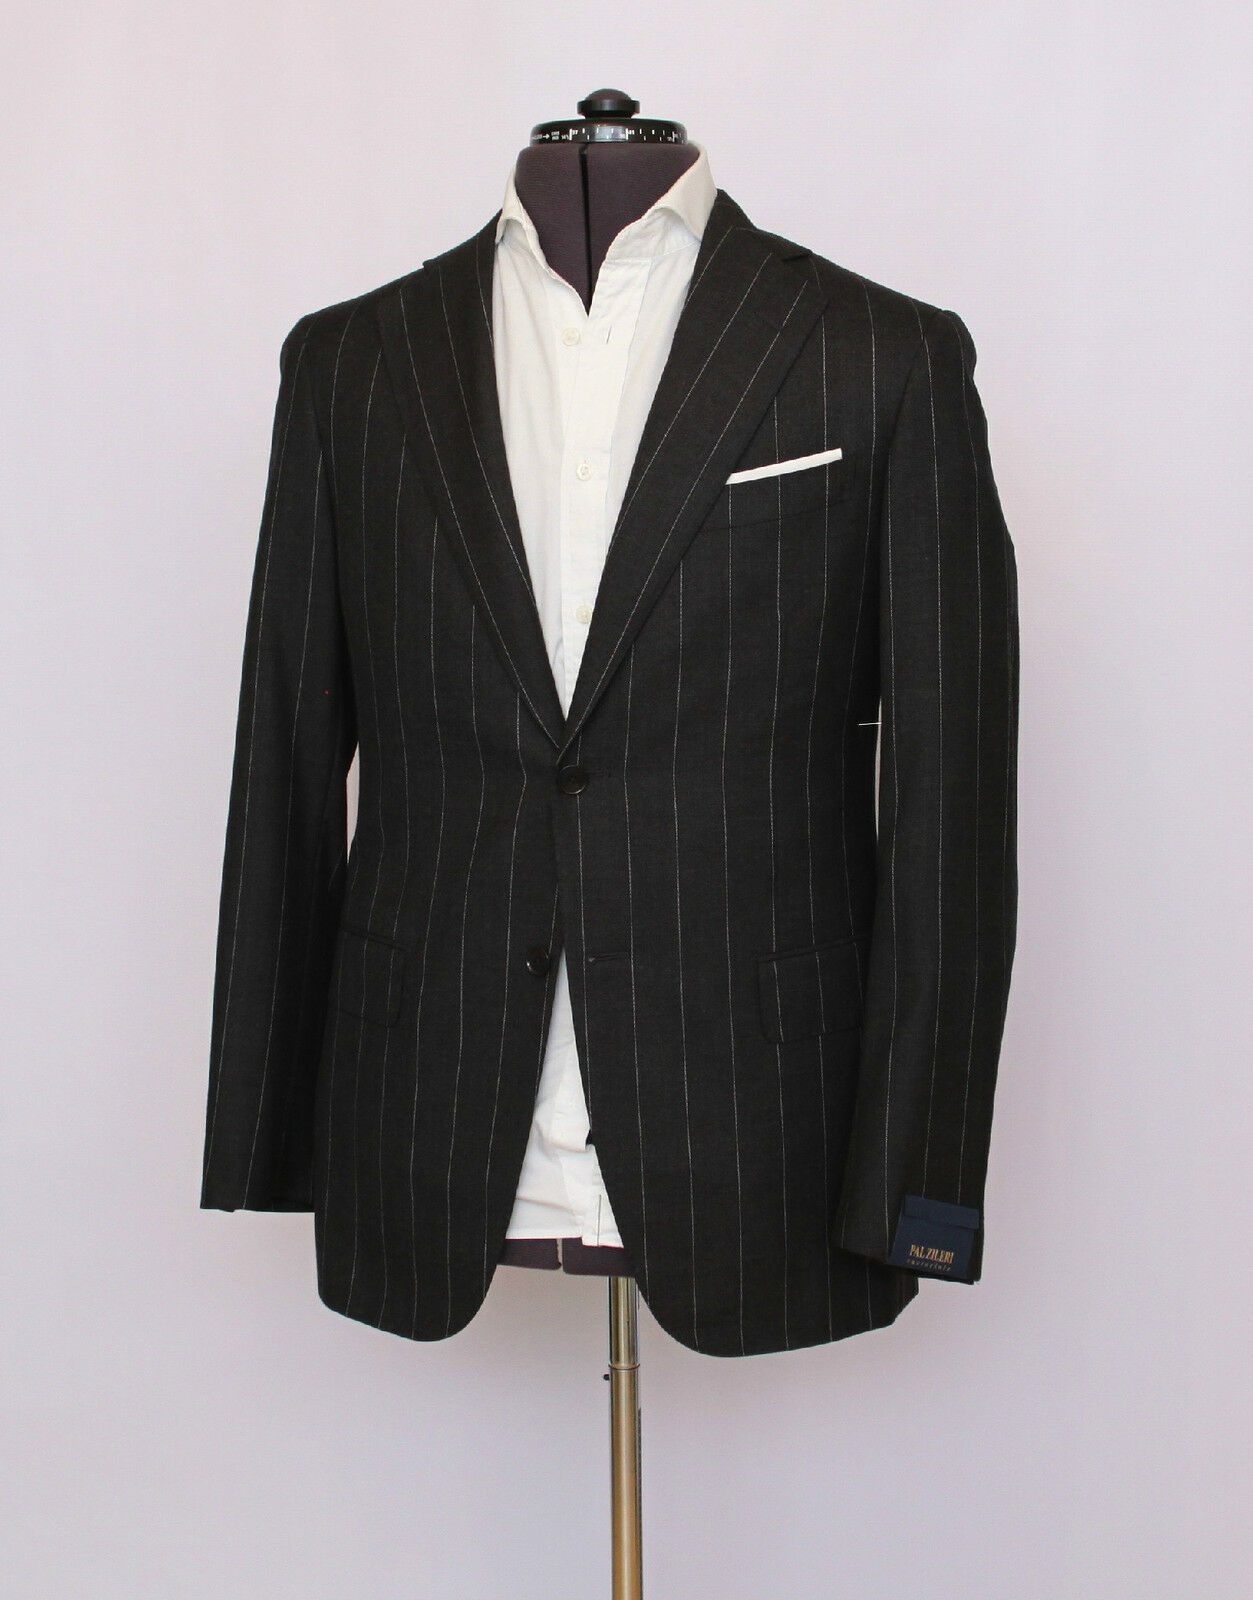 NWT 3,800 Pal Zileri Sartoriale Two Button Wool Cashmere grau Suit 44/54